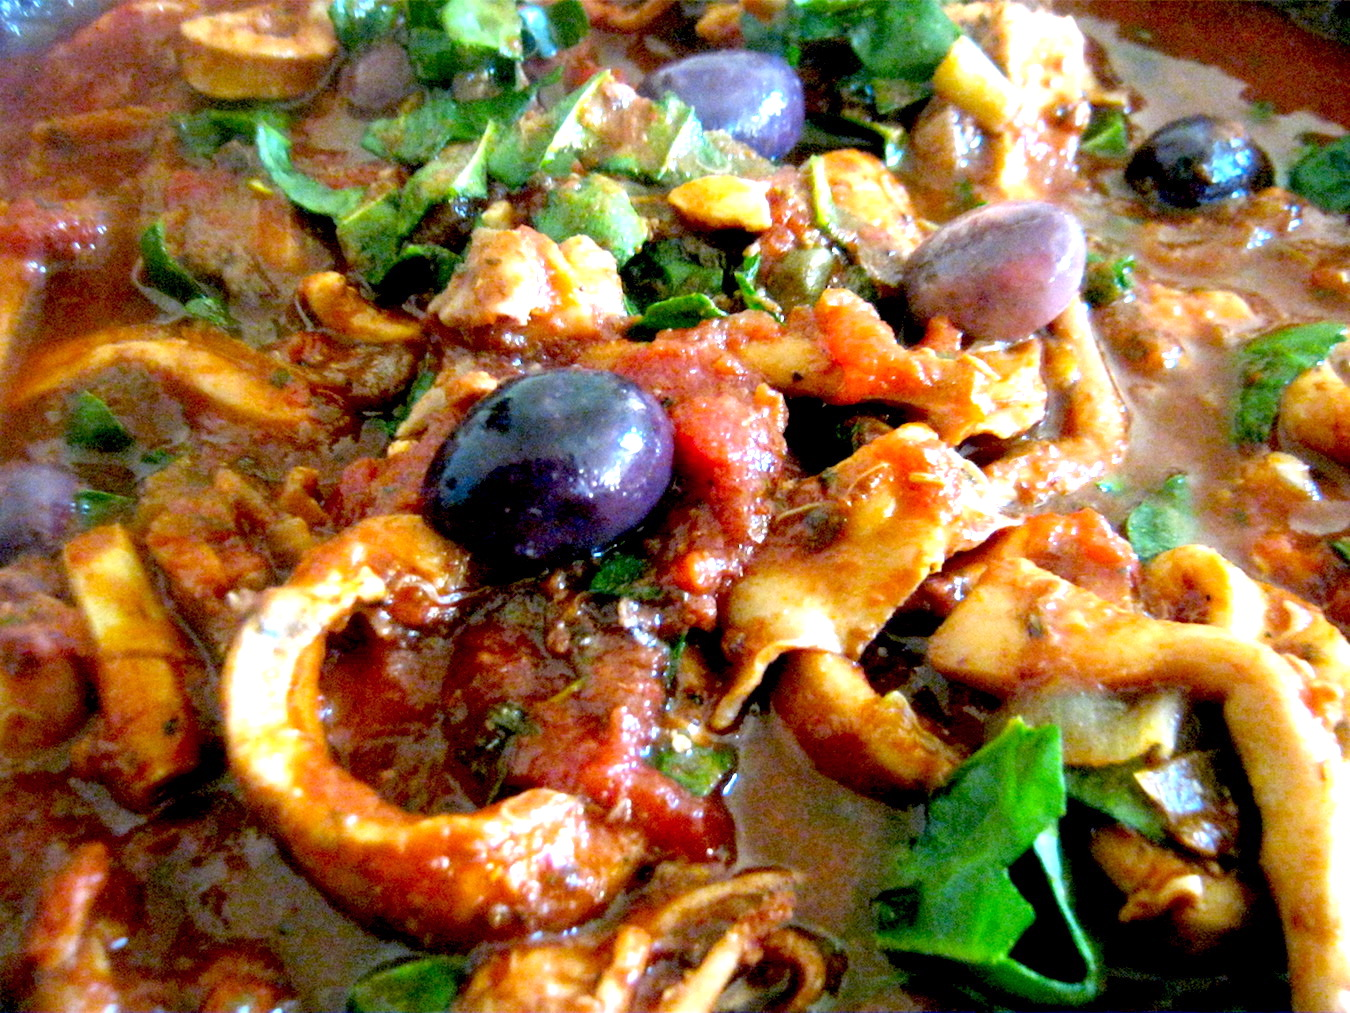 Calamari stew with olives and capers in a pan